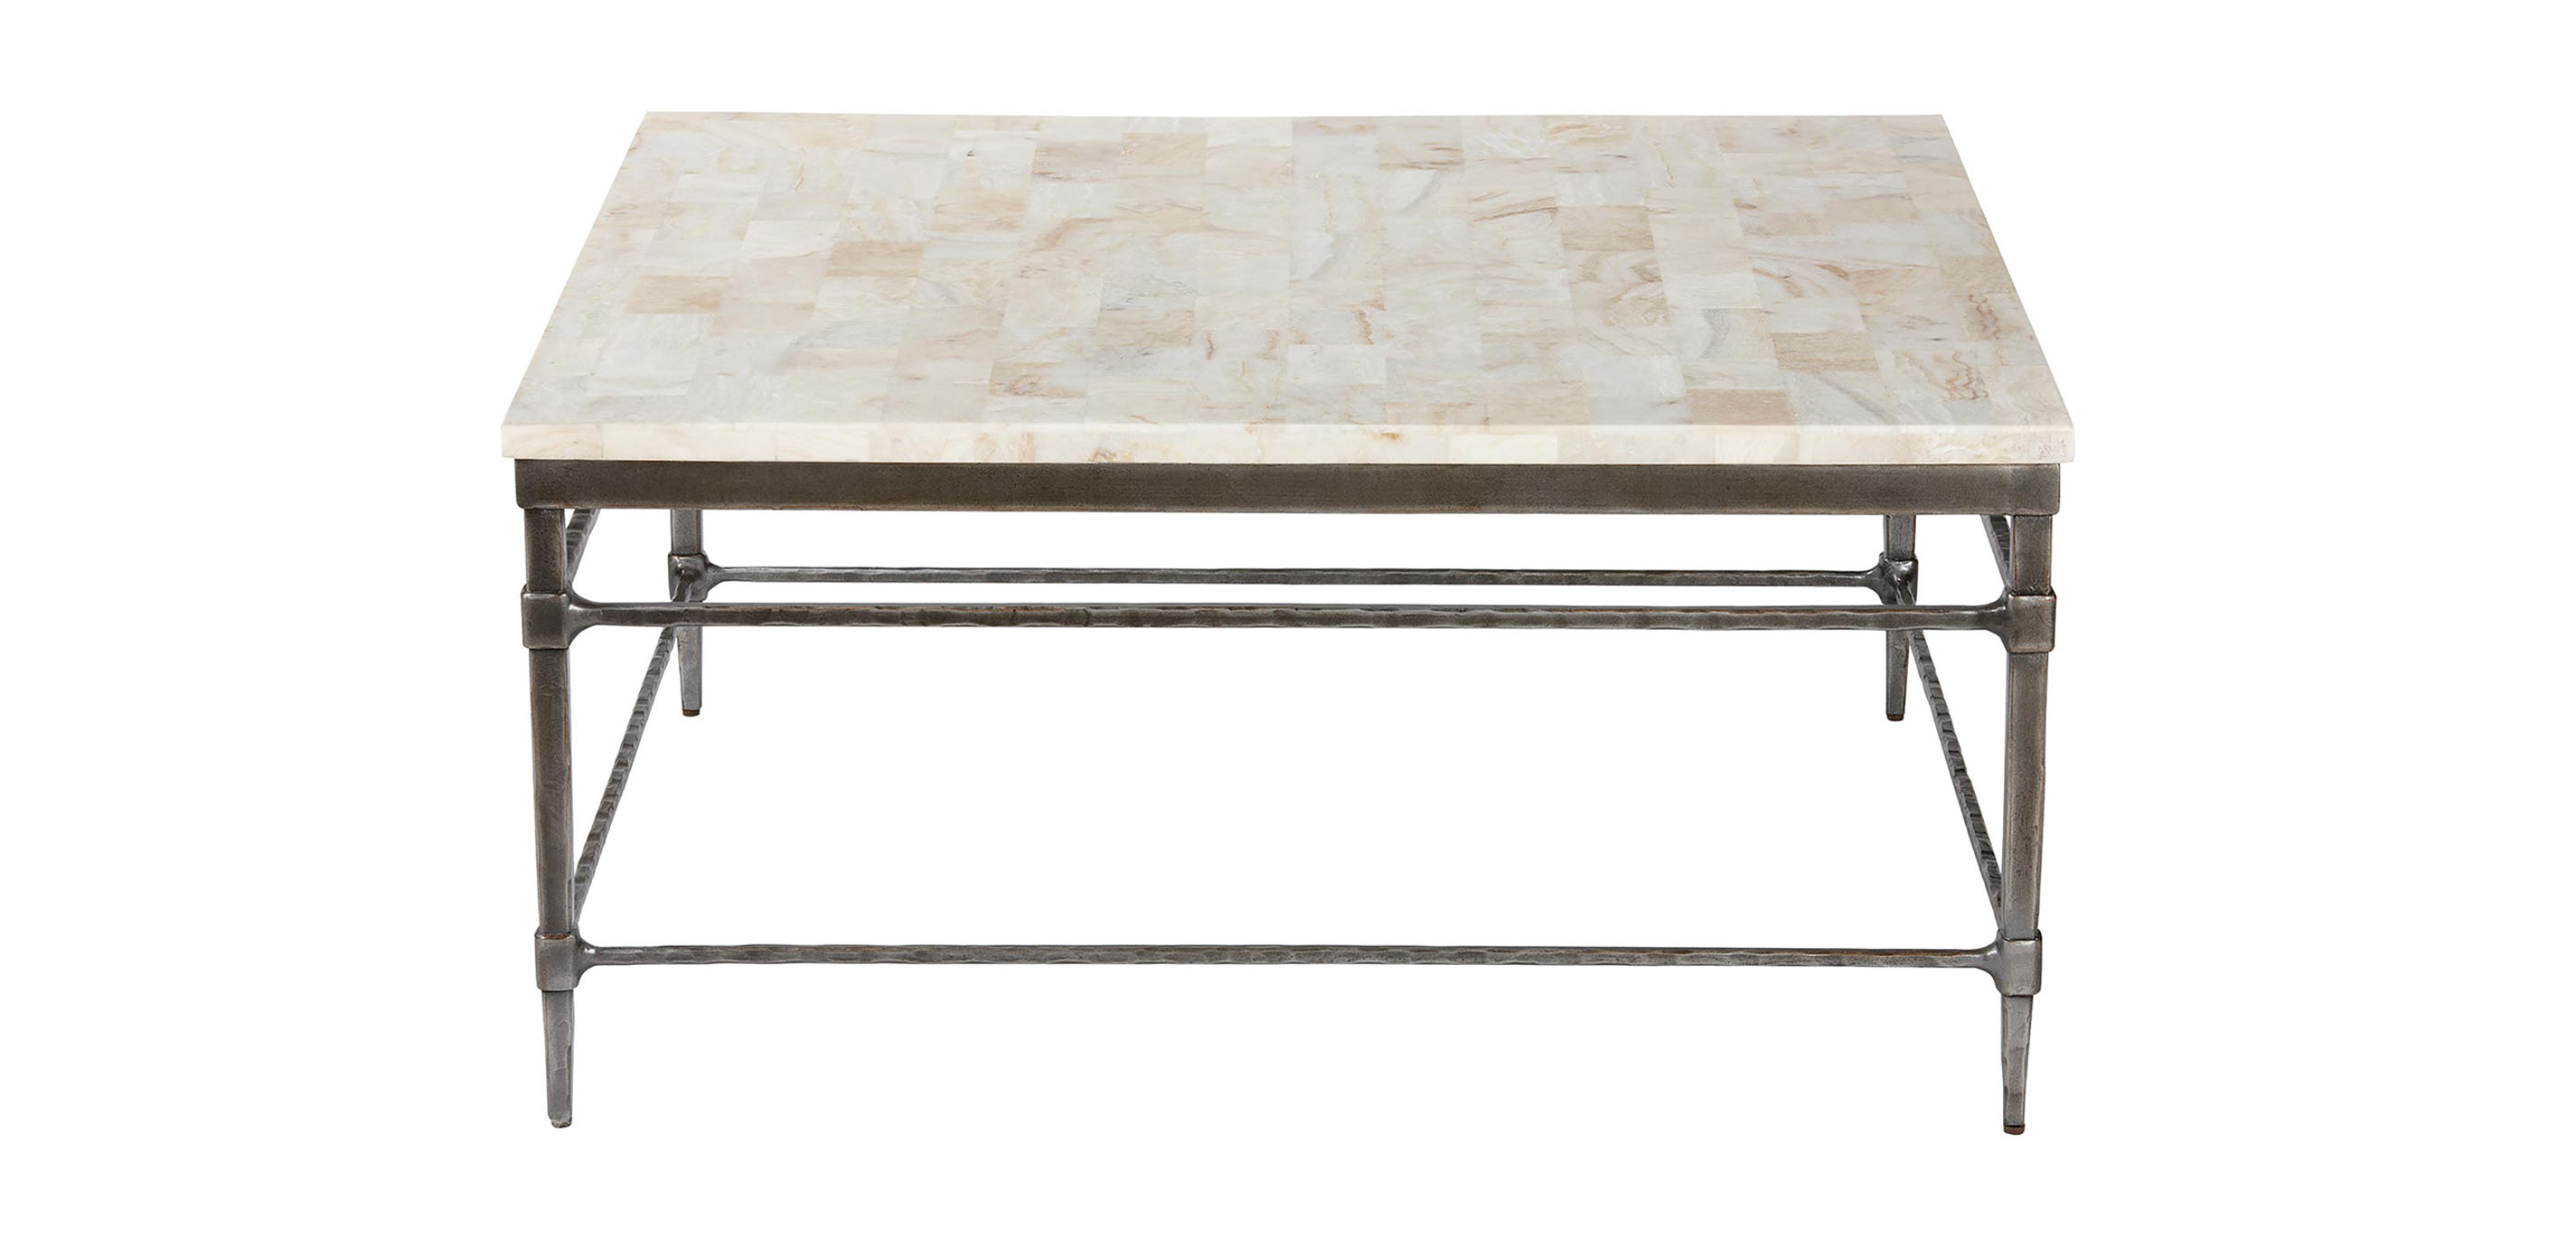 Marble Top Coffee Table Canada Vida Square Stone Top Coffee Table Coffee Tables Ethan